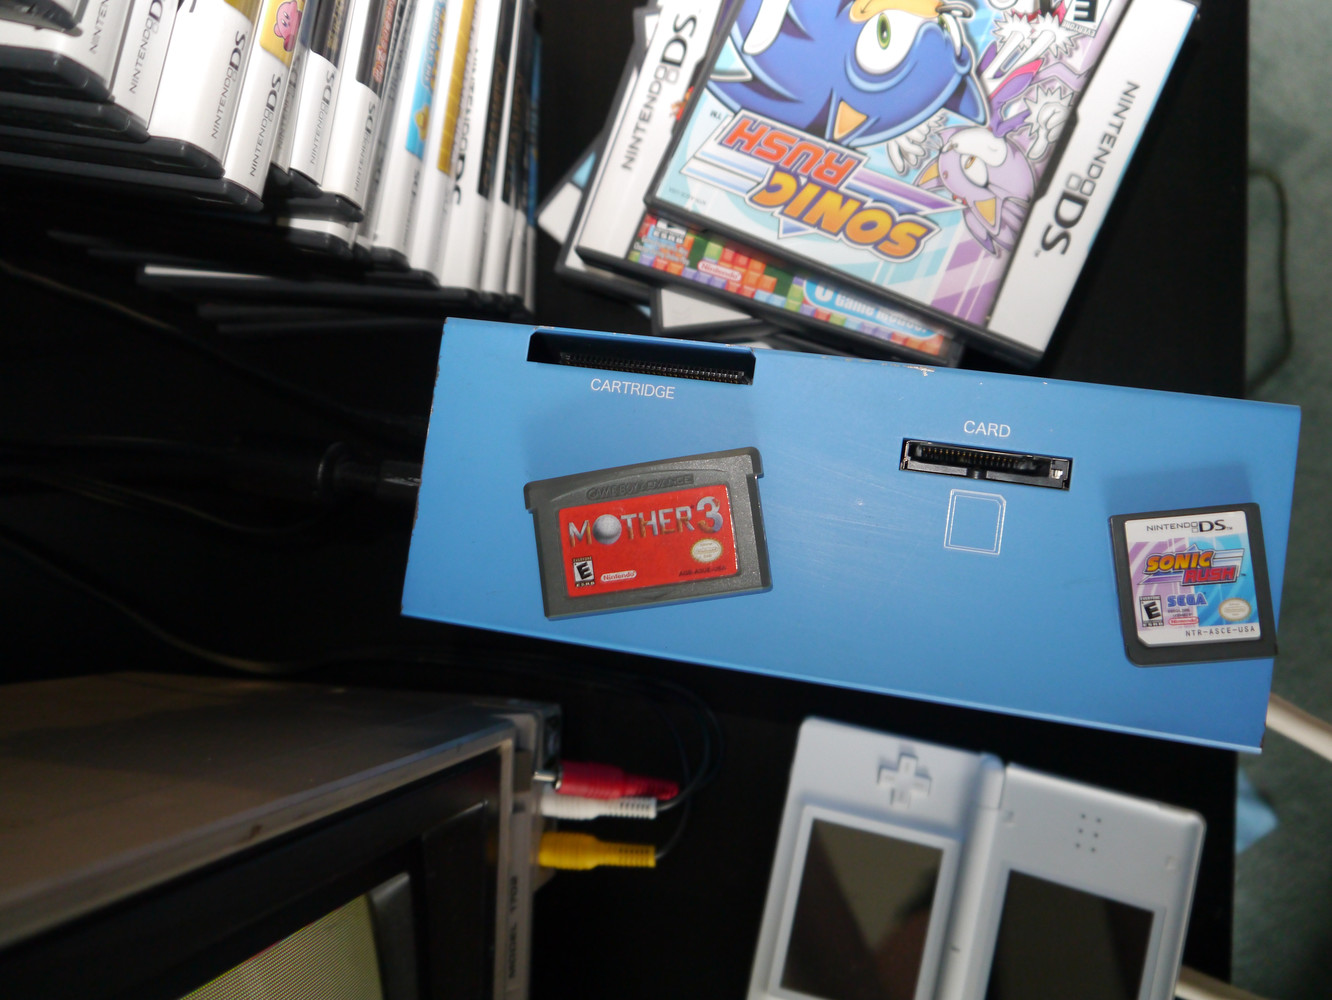 Nitro Capture unit (top) with Mother 3 and Sonic Rush carts